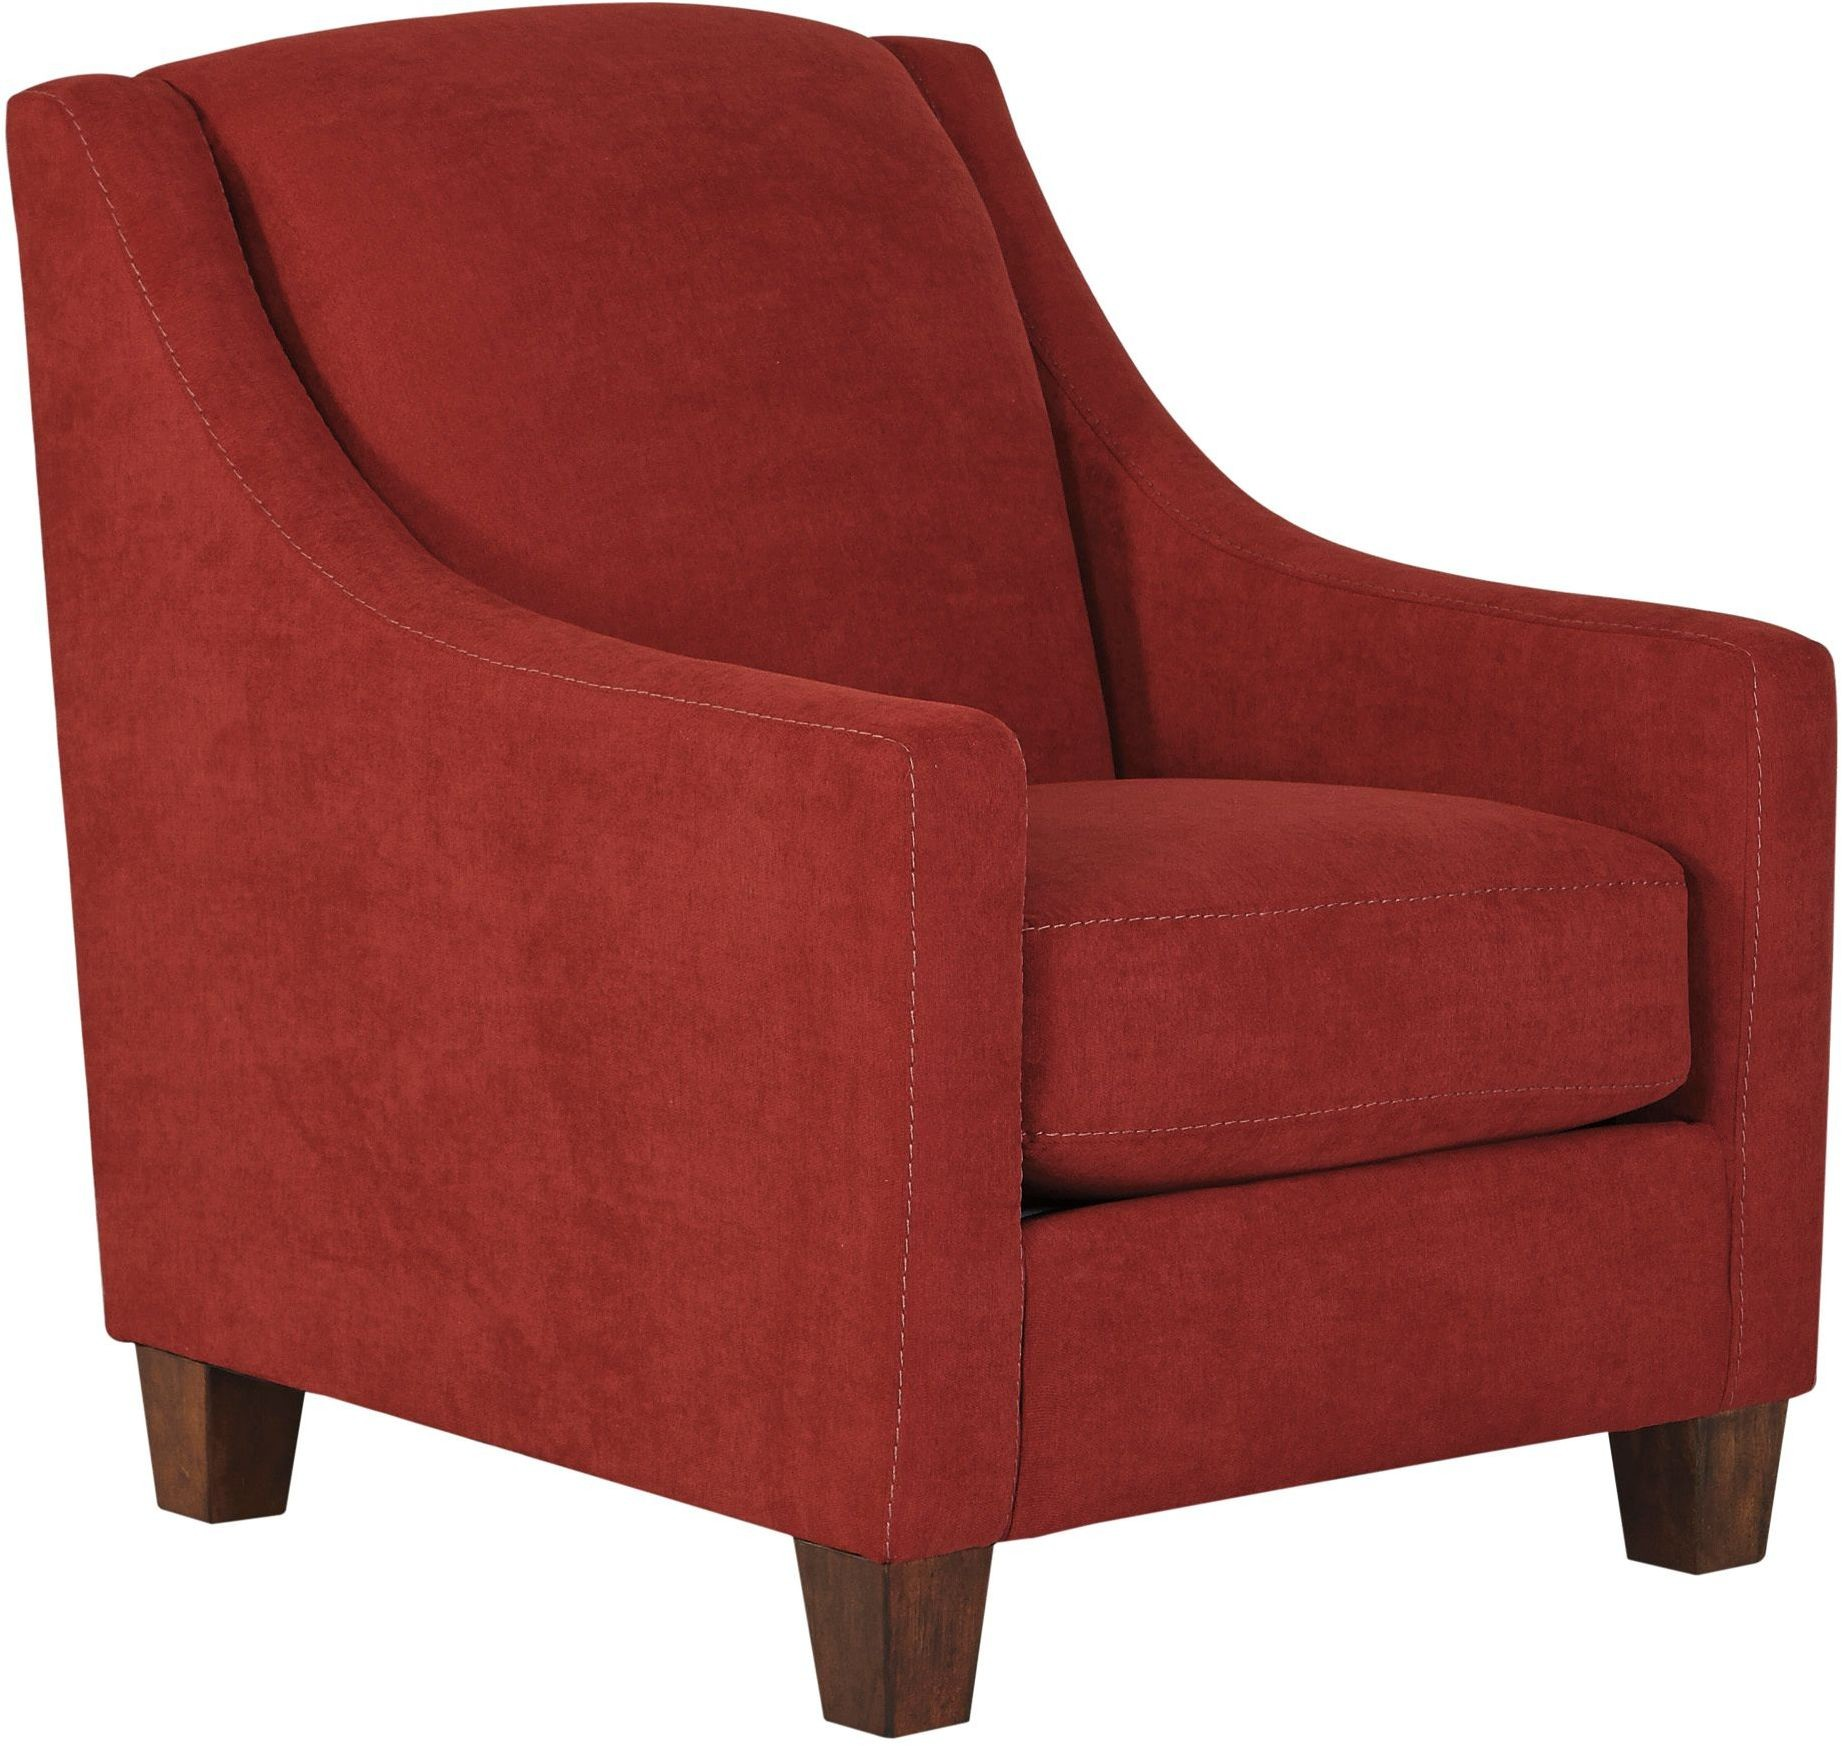 Maier Sienna Accent Chair From Ashley (4520221)